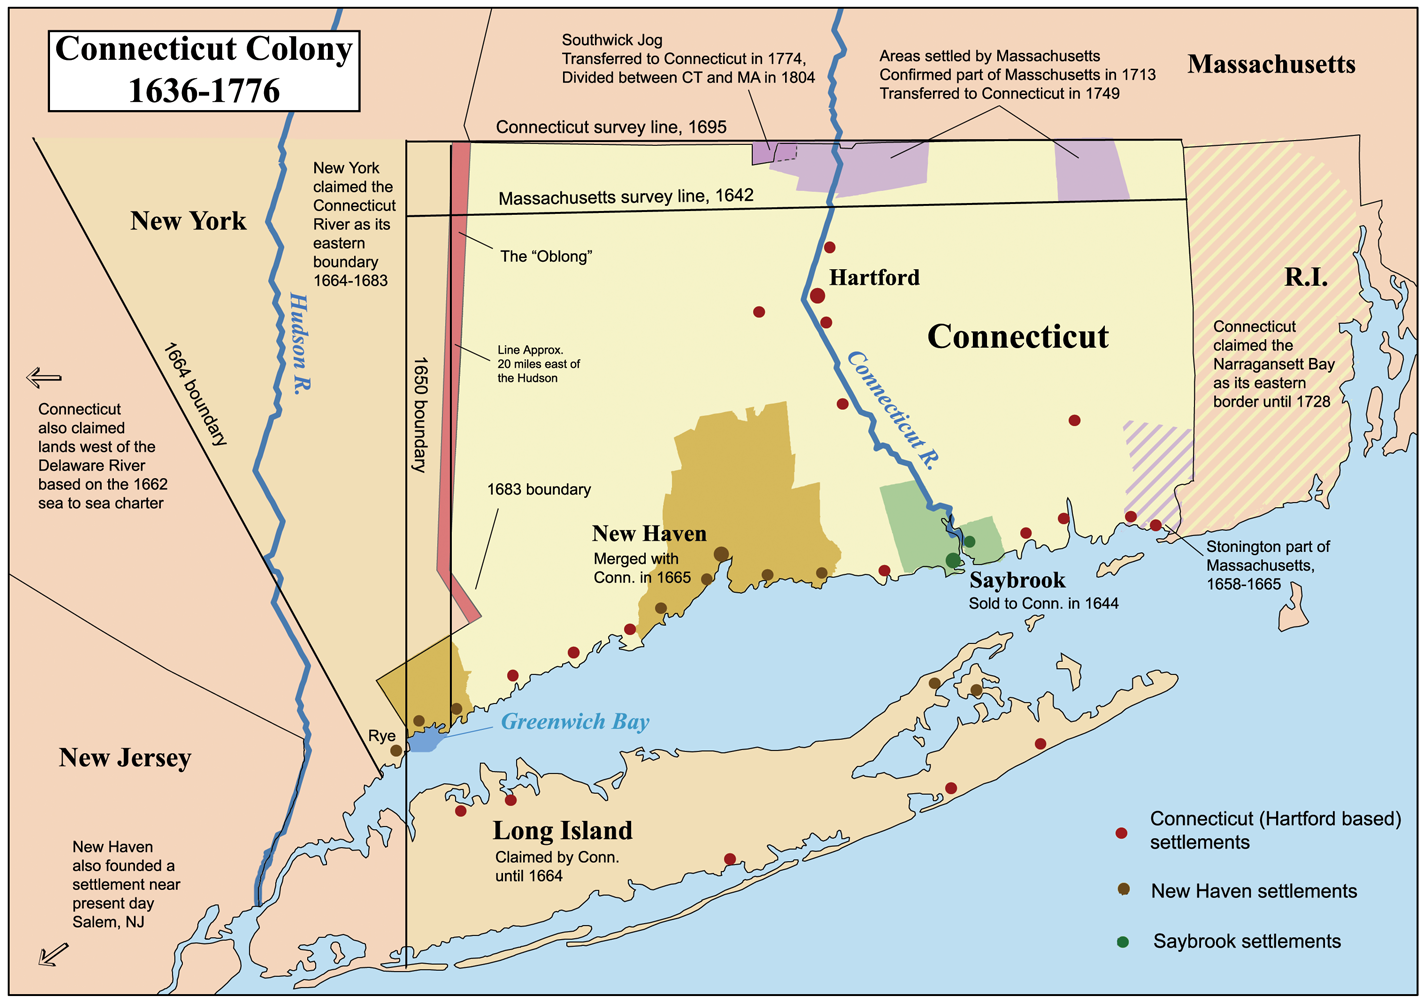 a history of connecticut Reaching to connecticut  us history ushistoryorg homepage back home   in religious practices connecticut mirrored massachusetts bay politically.